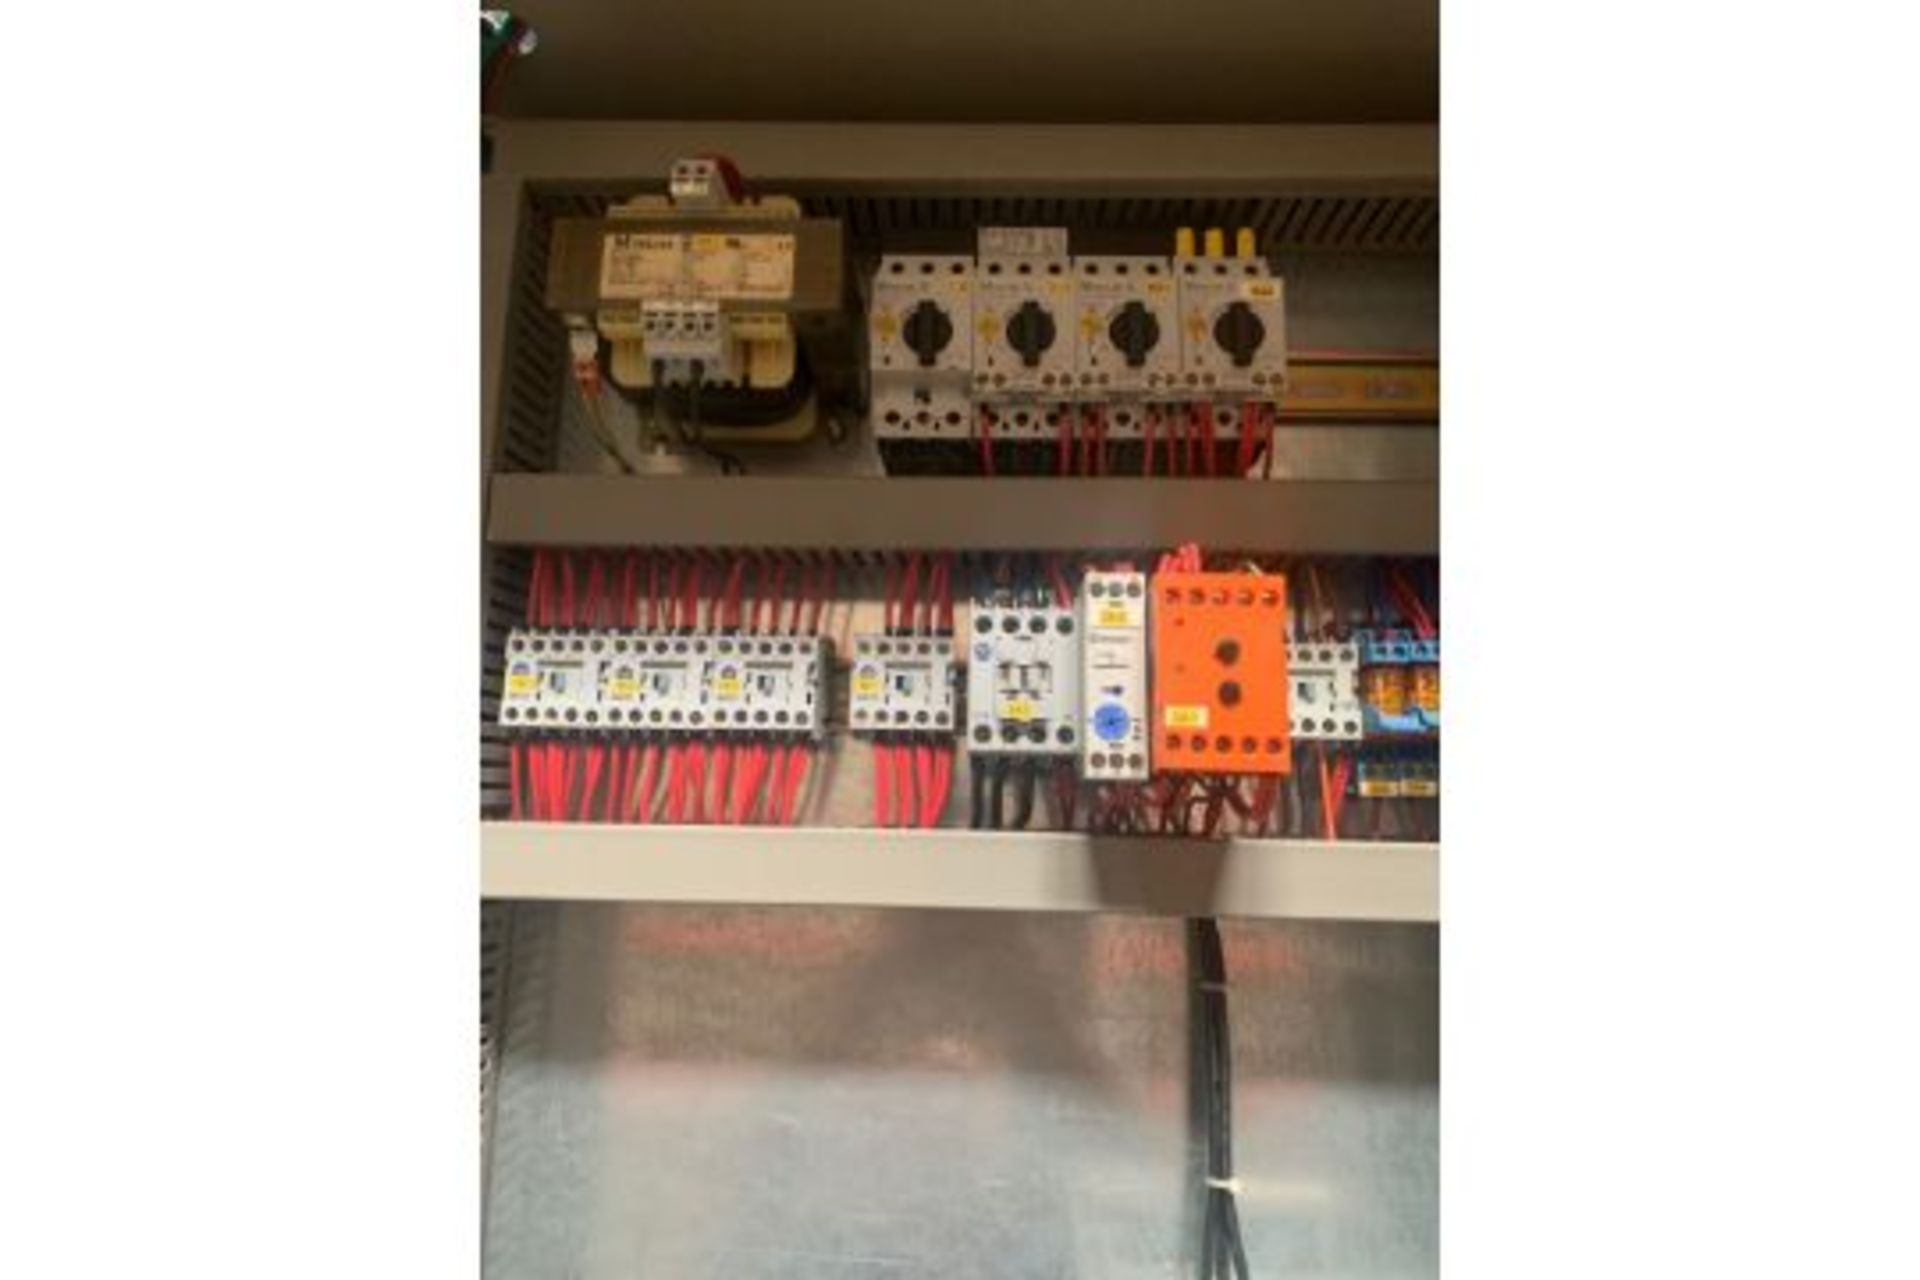 Lot 21100 - Disc Opener STUMMER Kontstruktion Model 89336- EWG Mev 73 23 480 Volts, Rigging Fee: $250